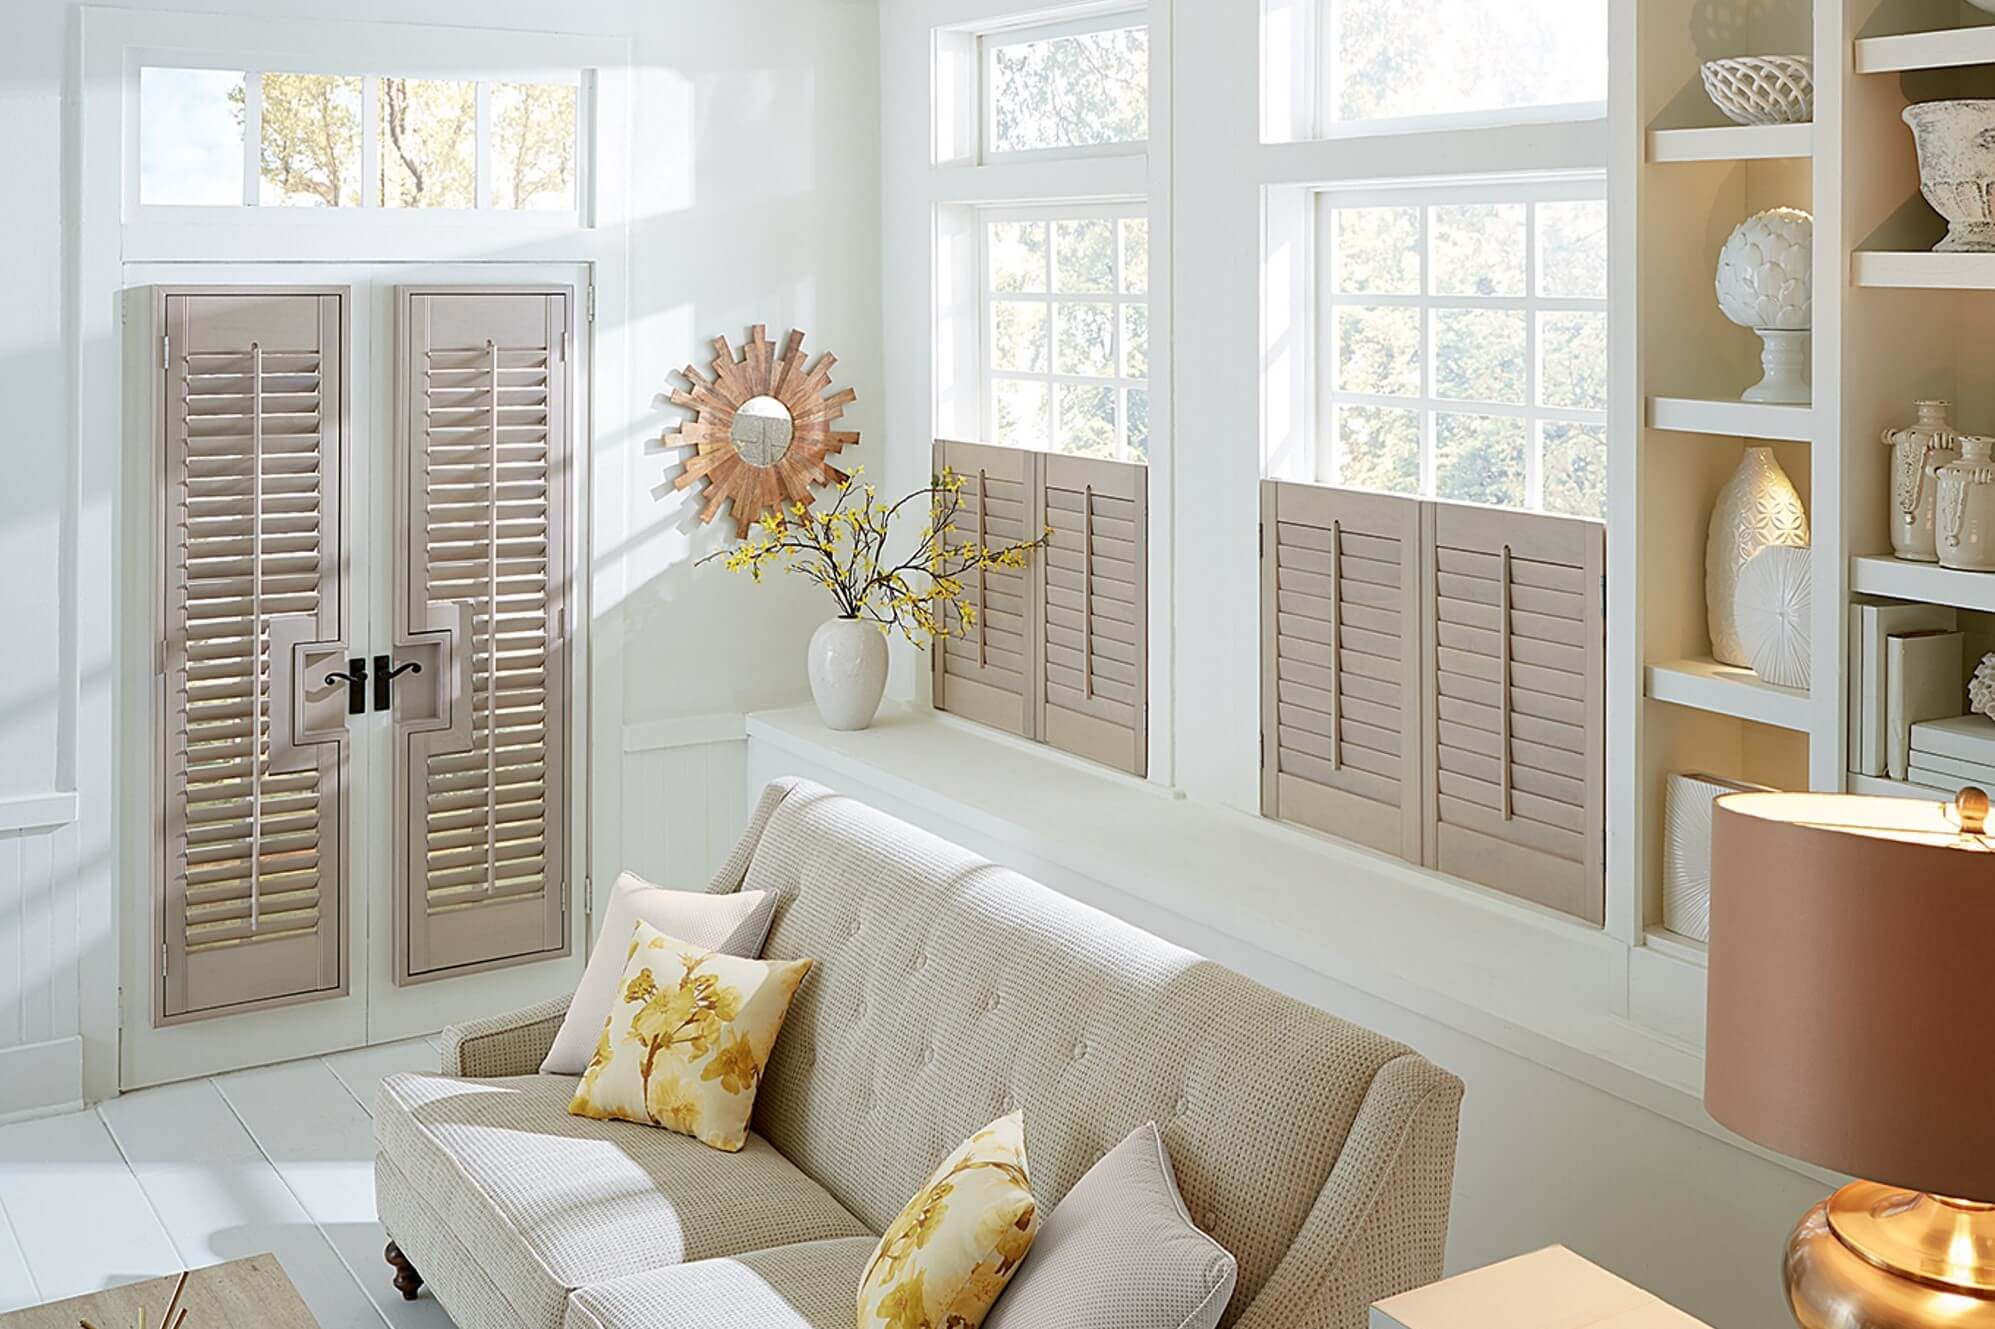 Shutters are energy efficient window treatments that also add value to your home.